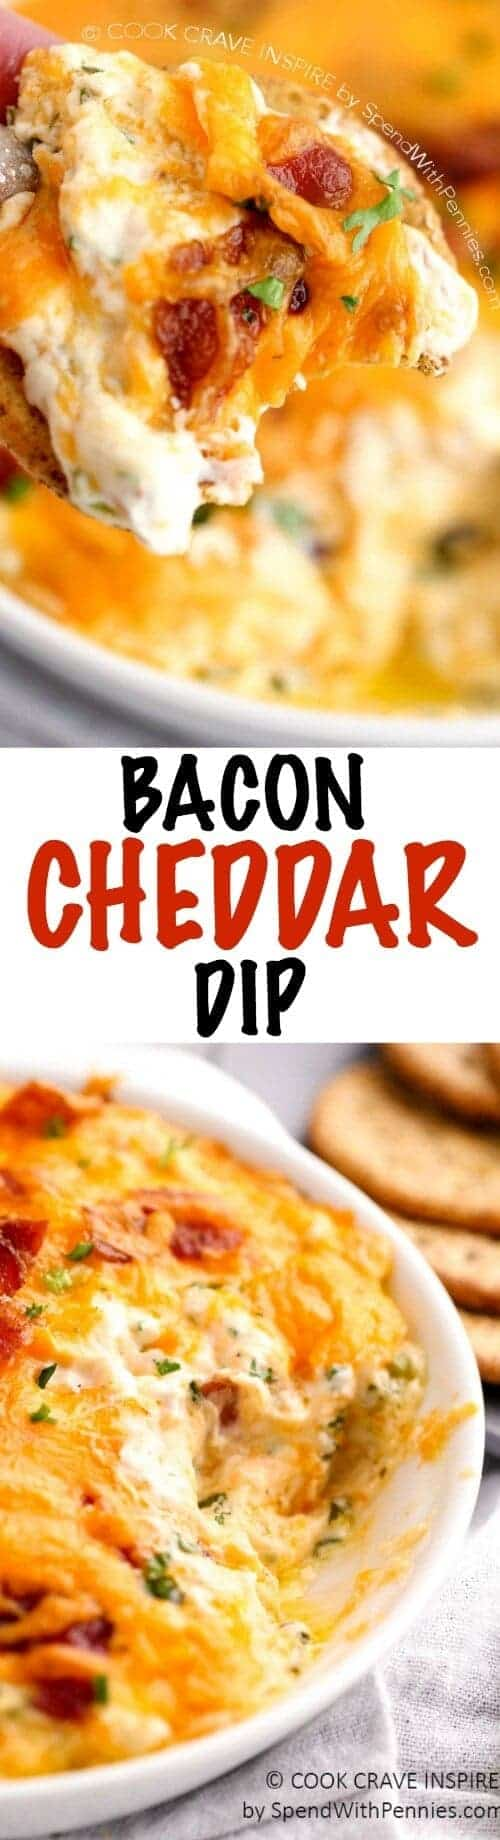 HOT BACON CHEDDAR DIP SPEND WITH PENNIES